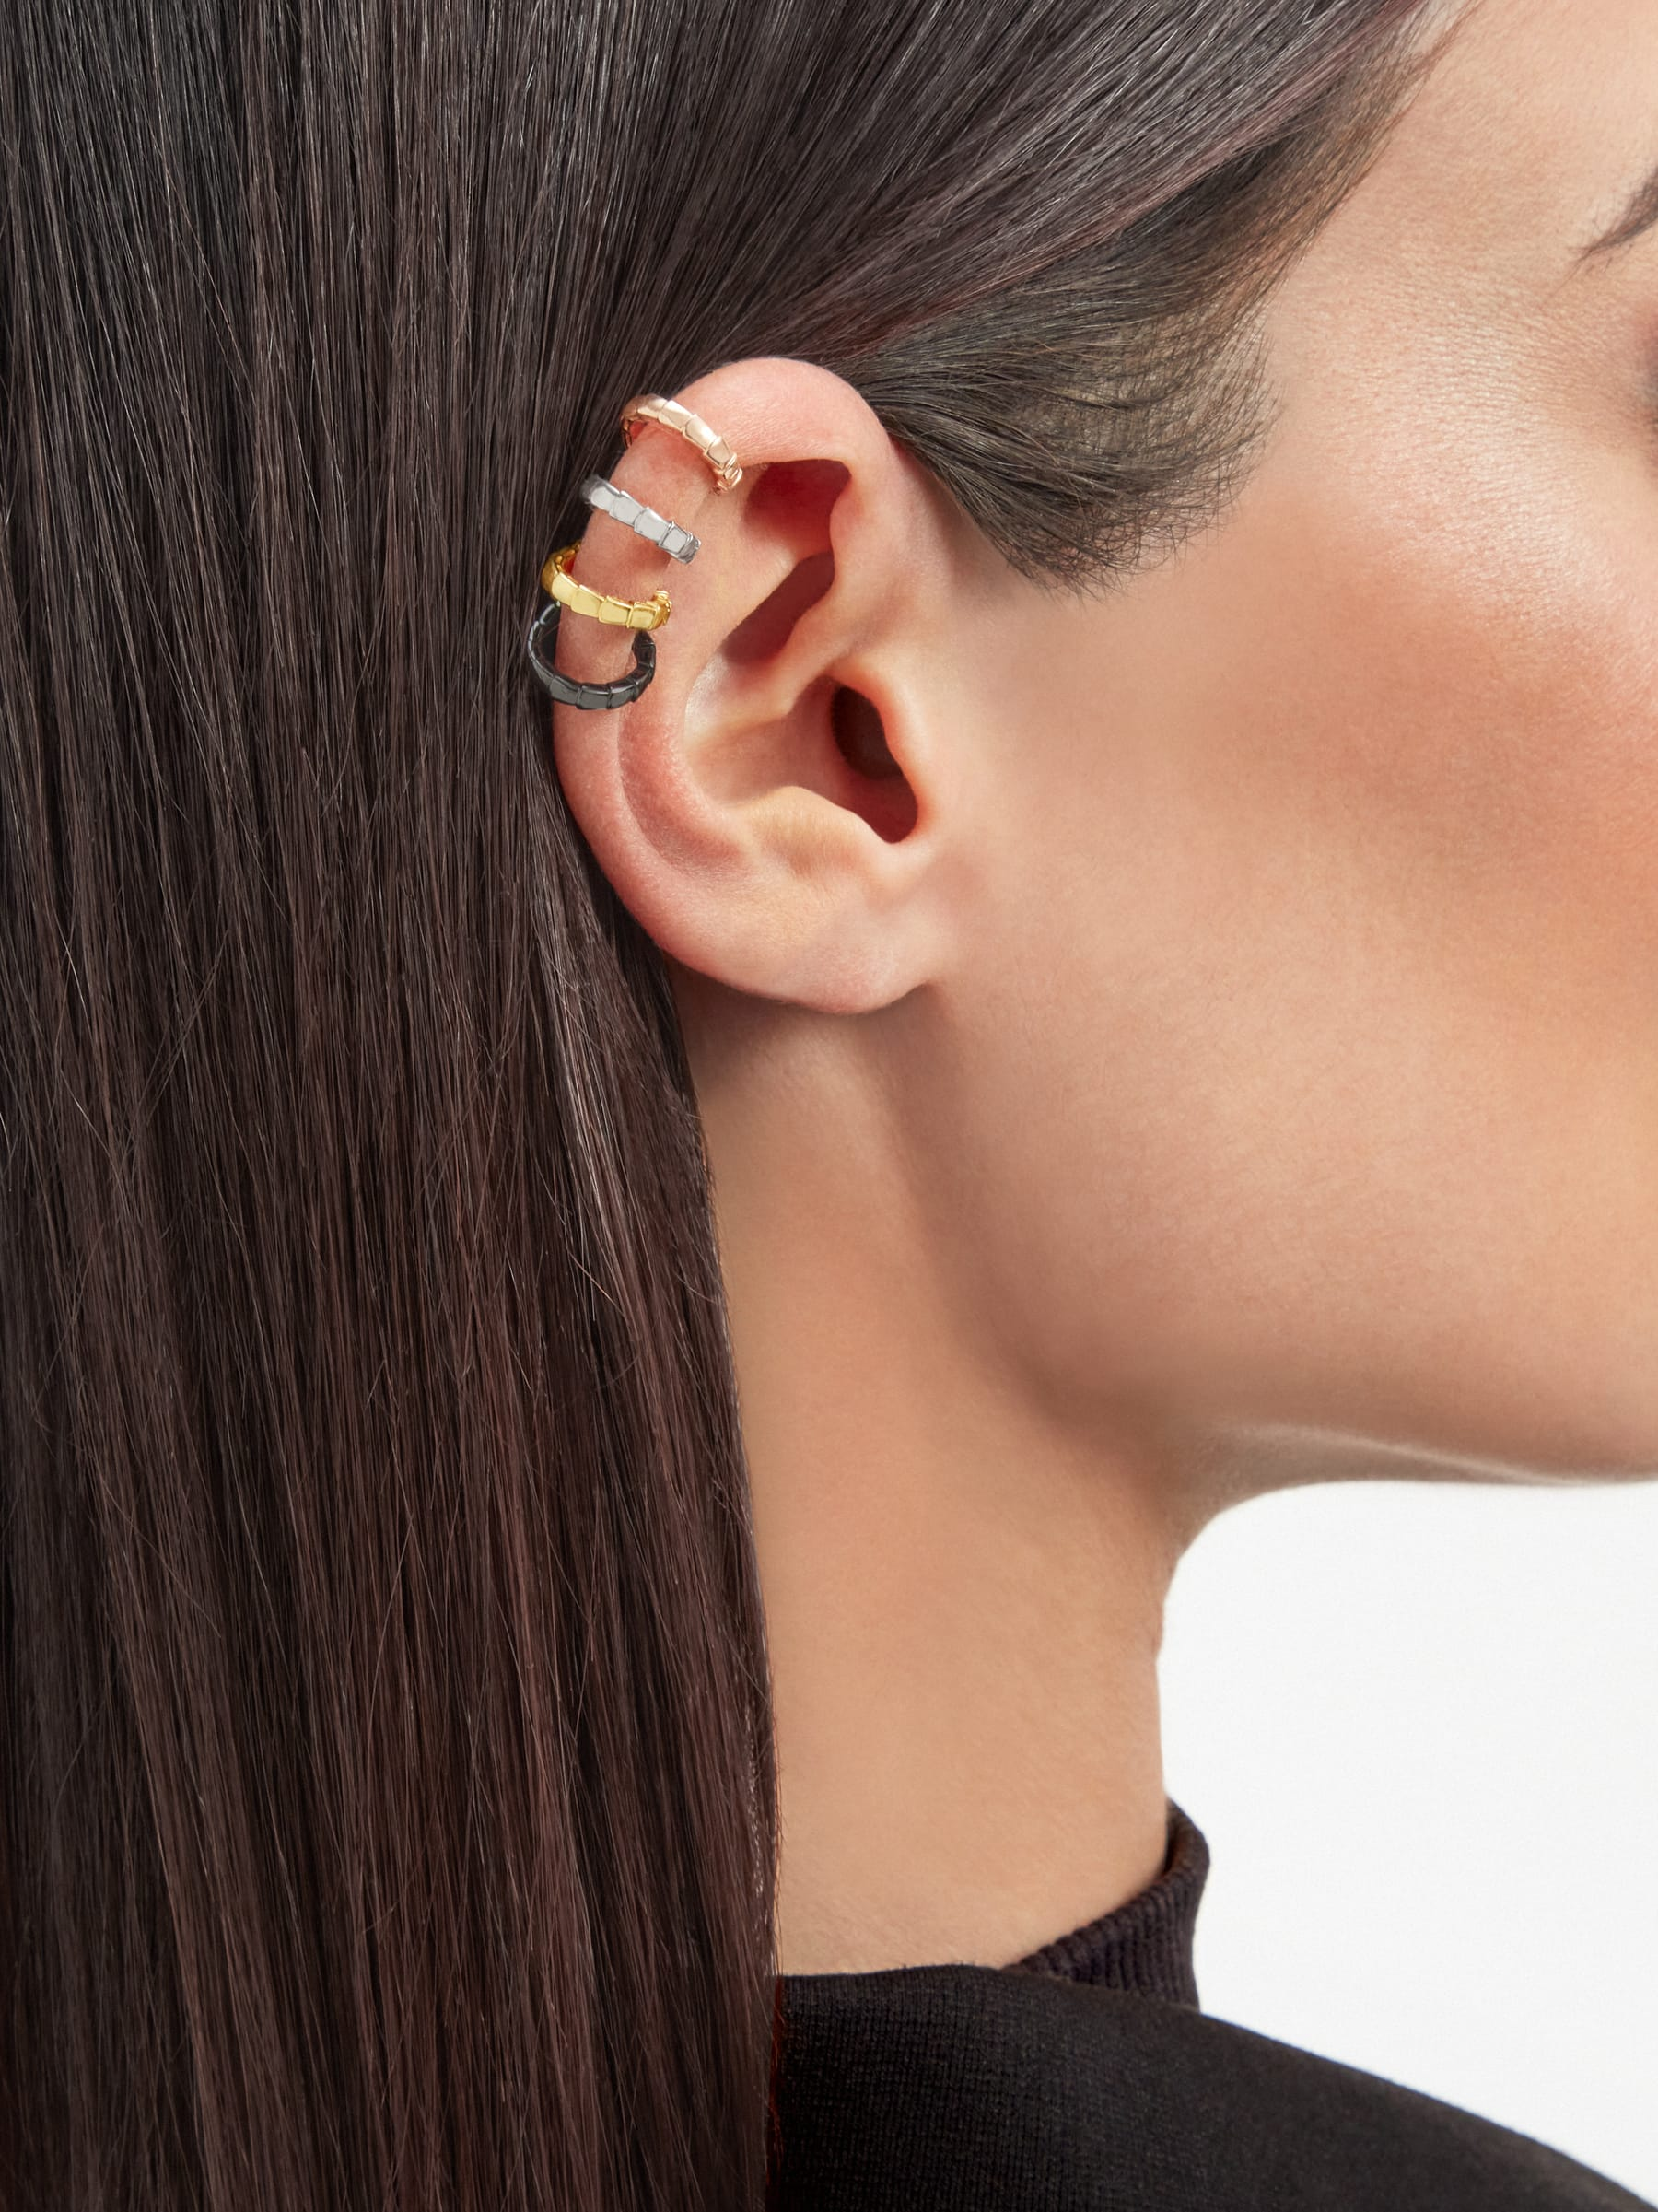 Serpenti Viper single earring in 18 kt rose, white and yellow gold, and black rhodium 356173 image 3